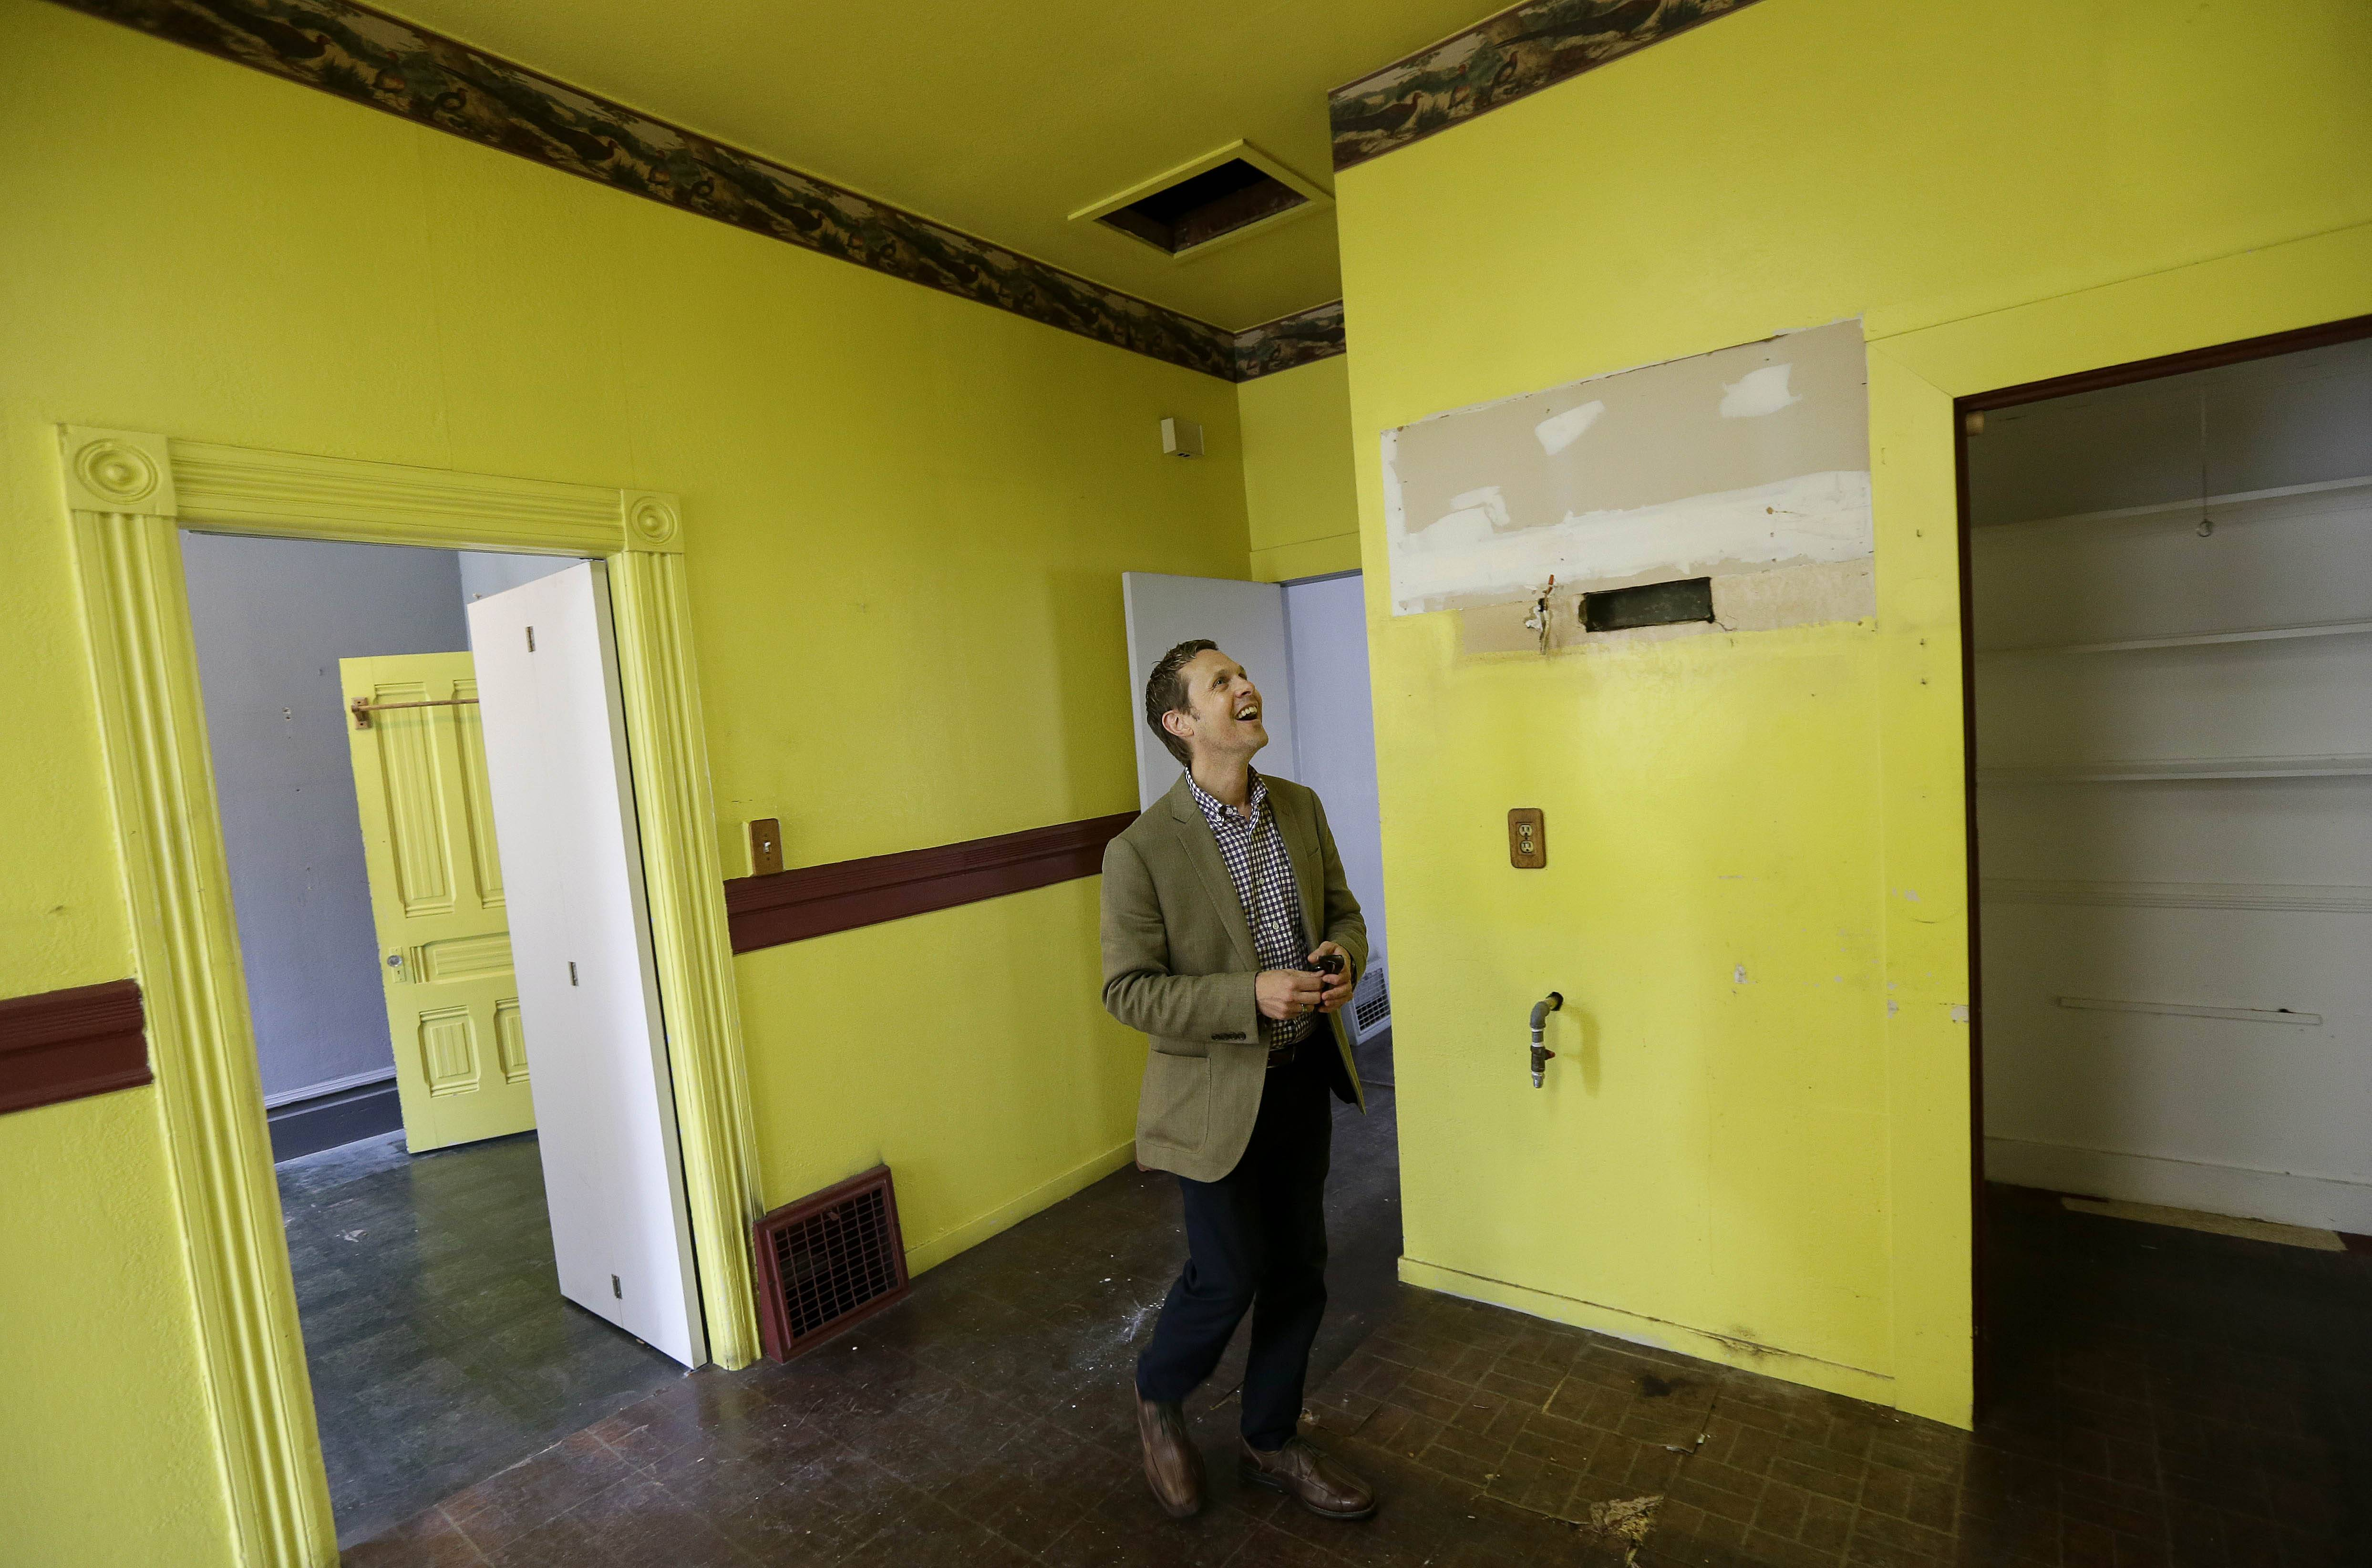 George Limperis, a realtor with Paragon Real Estate Group, walks through the kitchen of a property in the Noe Valley neighborhood in San Francisco. Purchases of previously owned U.S. homes unexpectedly rose in July to a 10-month high as low borrowing costs and an increase in inventory drew buyers.